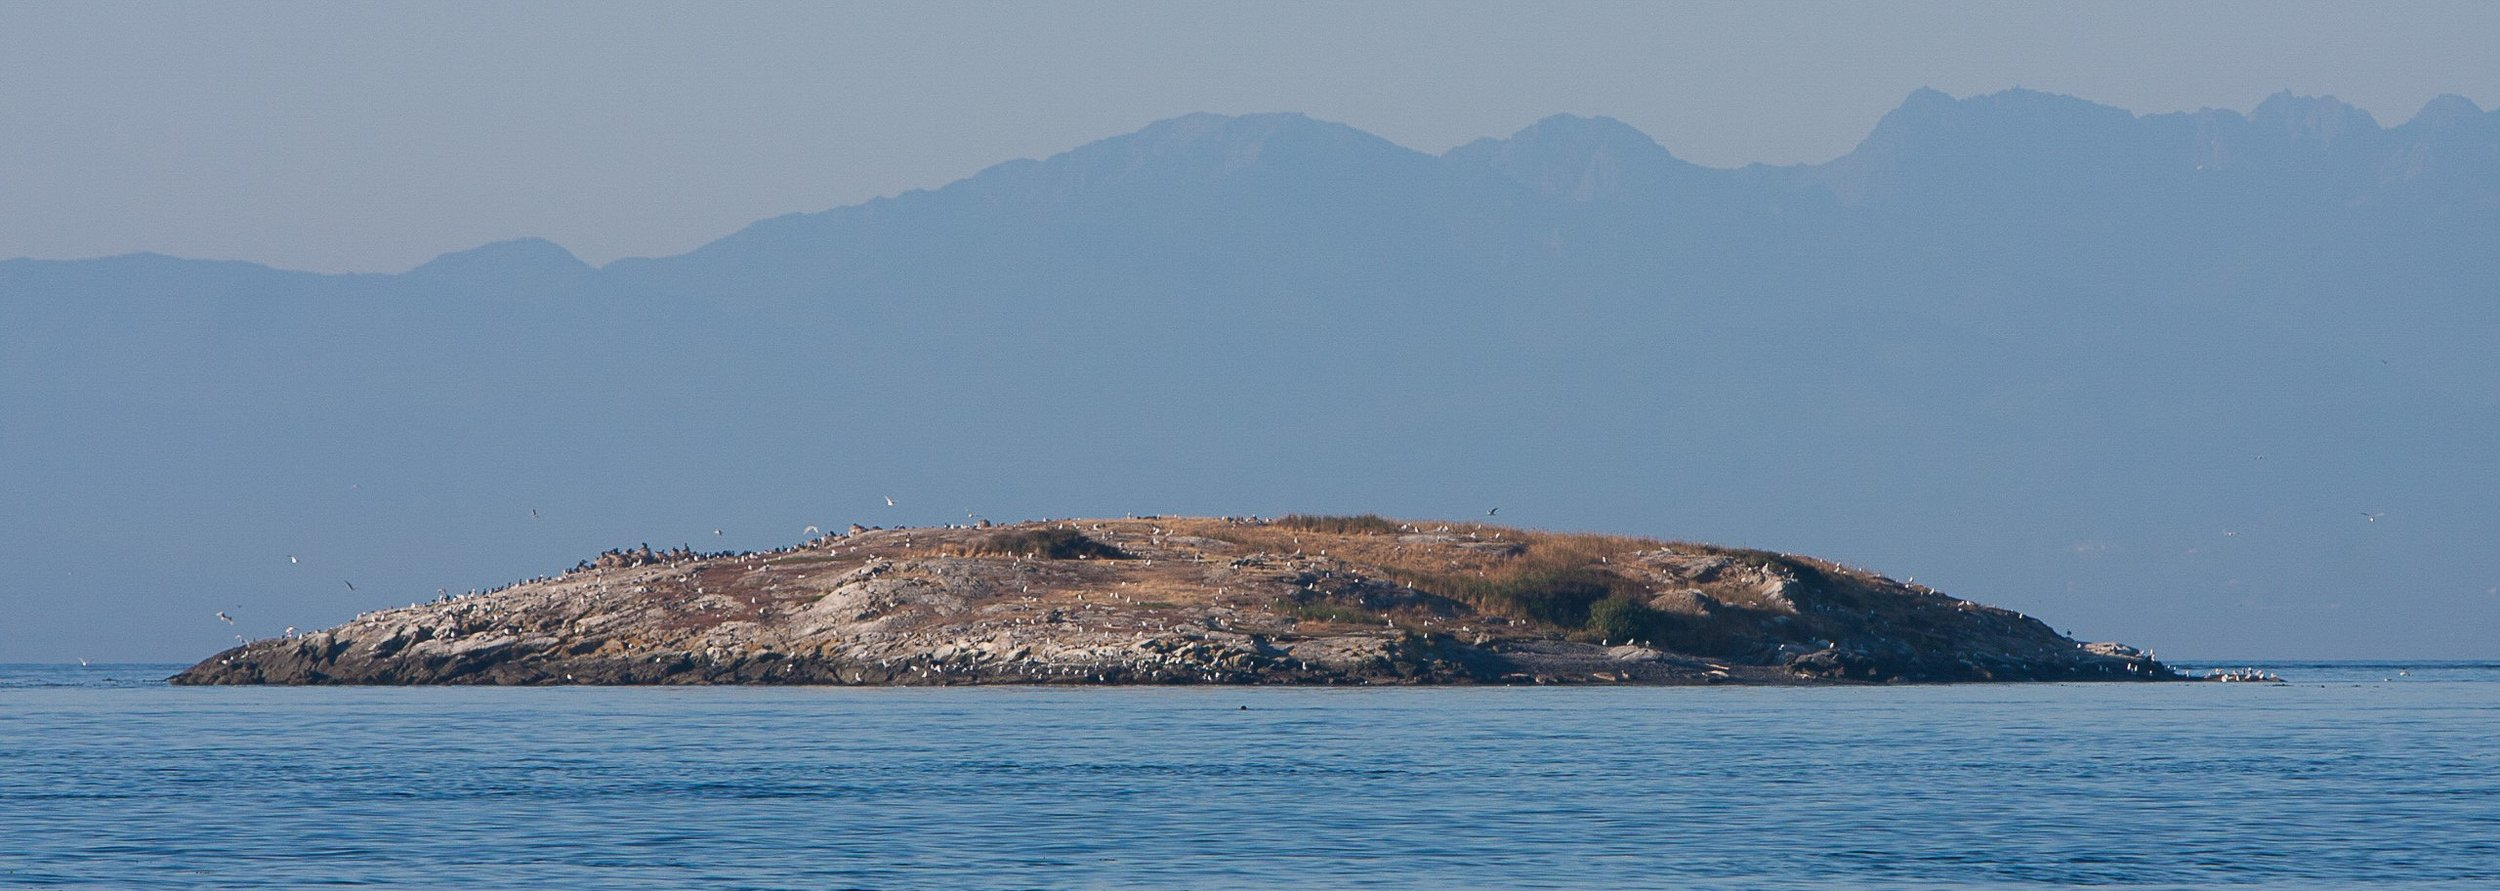 Goose Island (2008 from the north) with double-crested cormorants (upper left of the island), glaucous-winged gulls scattered across the island, and a few harbor seals on the beach (shadowed area right side of the island).Photo © Phil Green / TNC